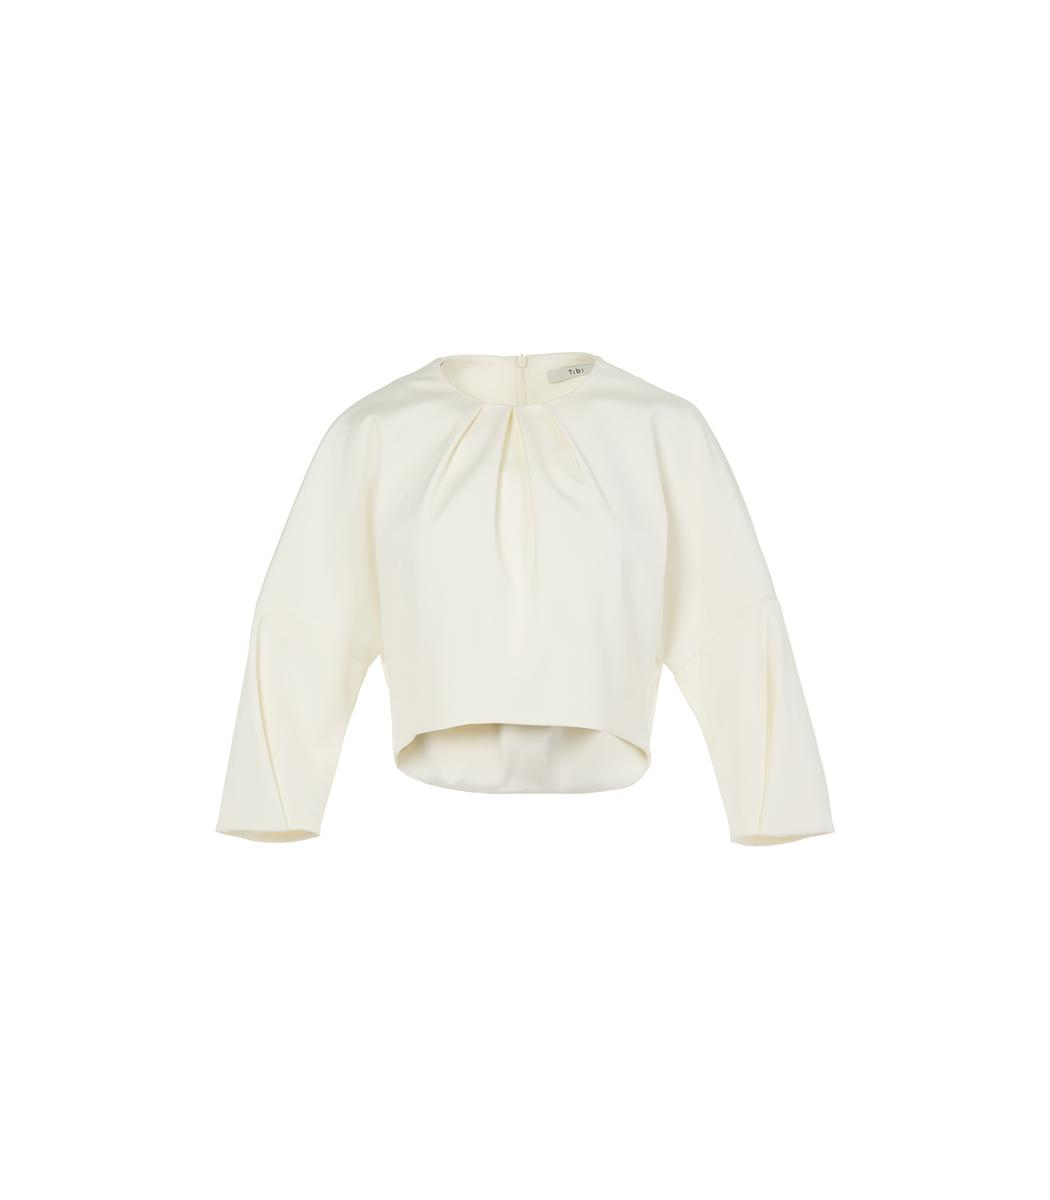 Tibi Ivory Stretch Faille Sculpted Top